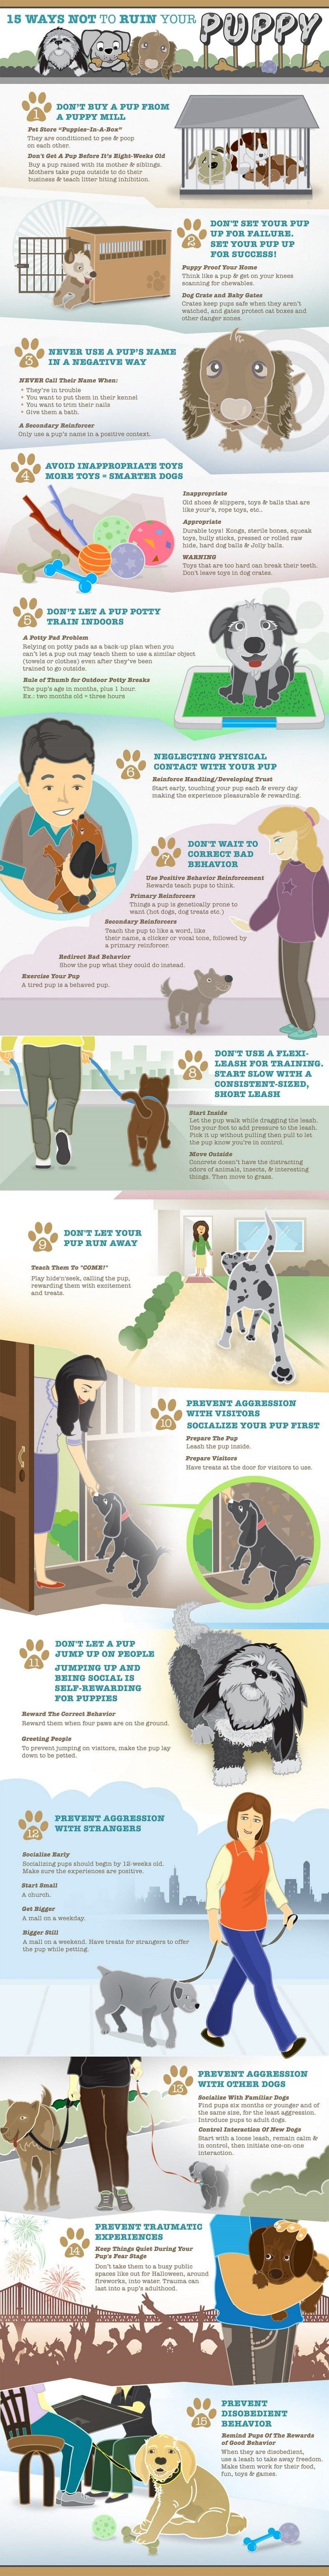 Puppy training infographic